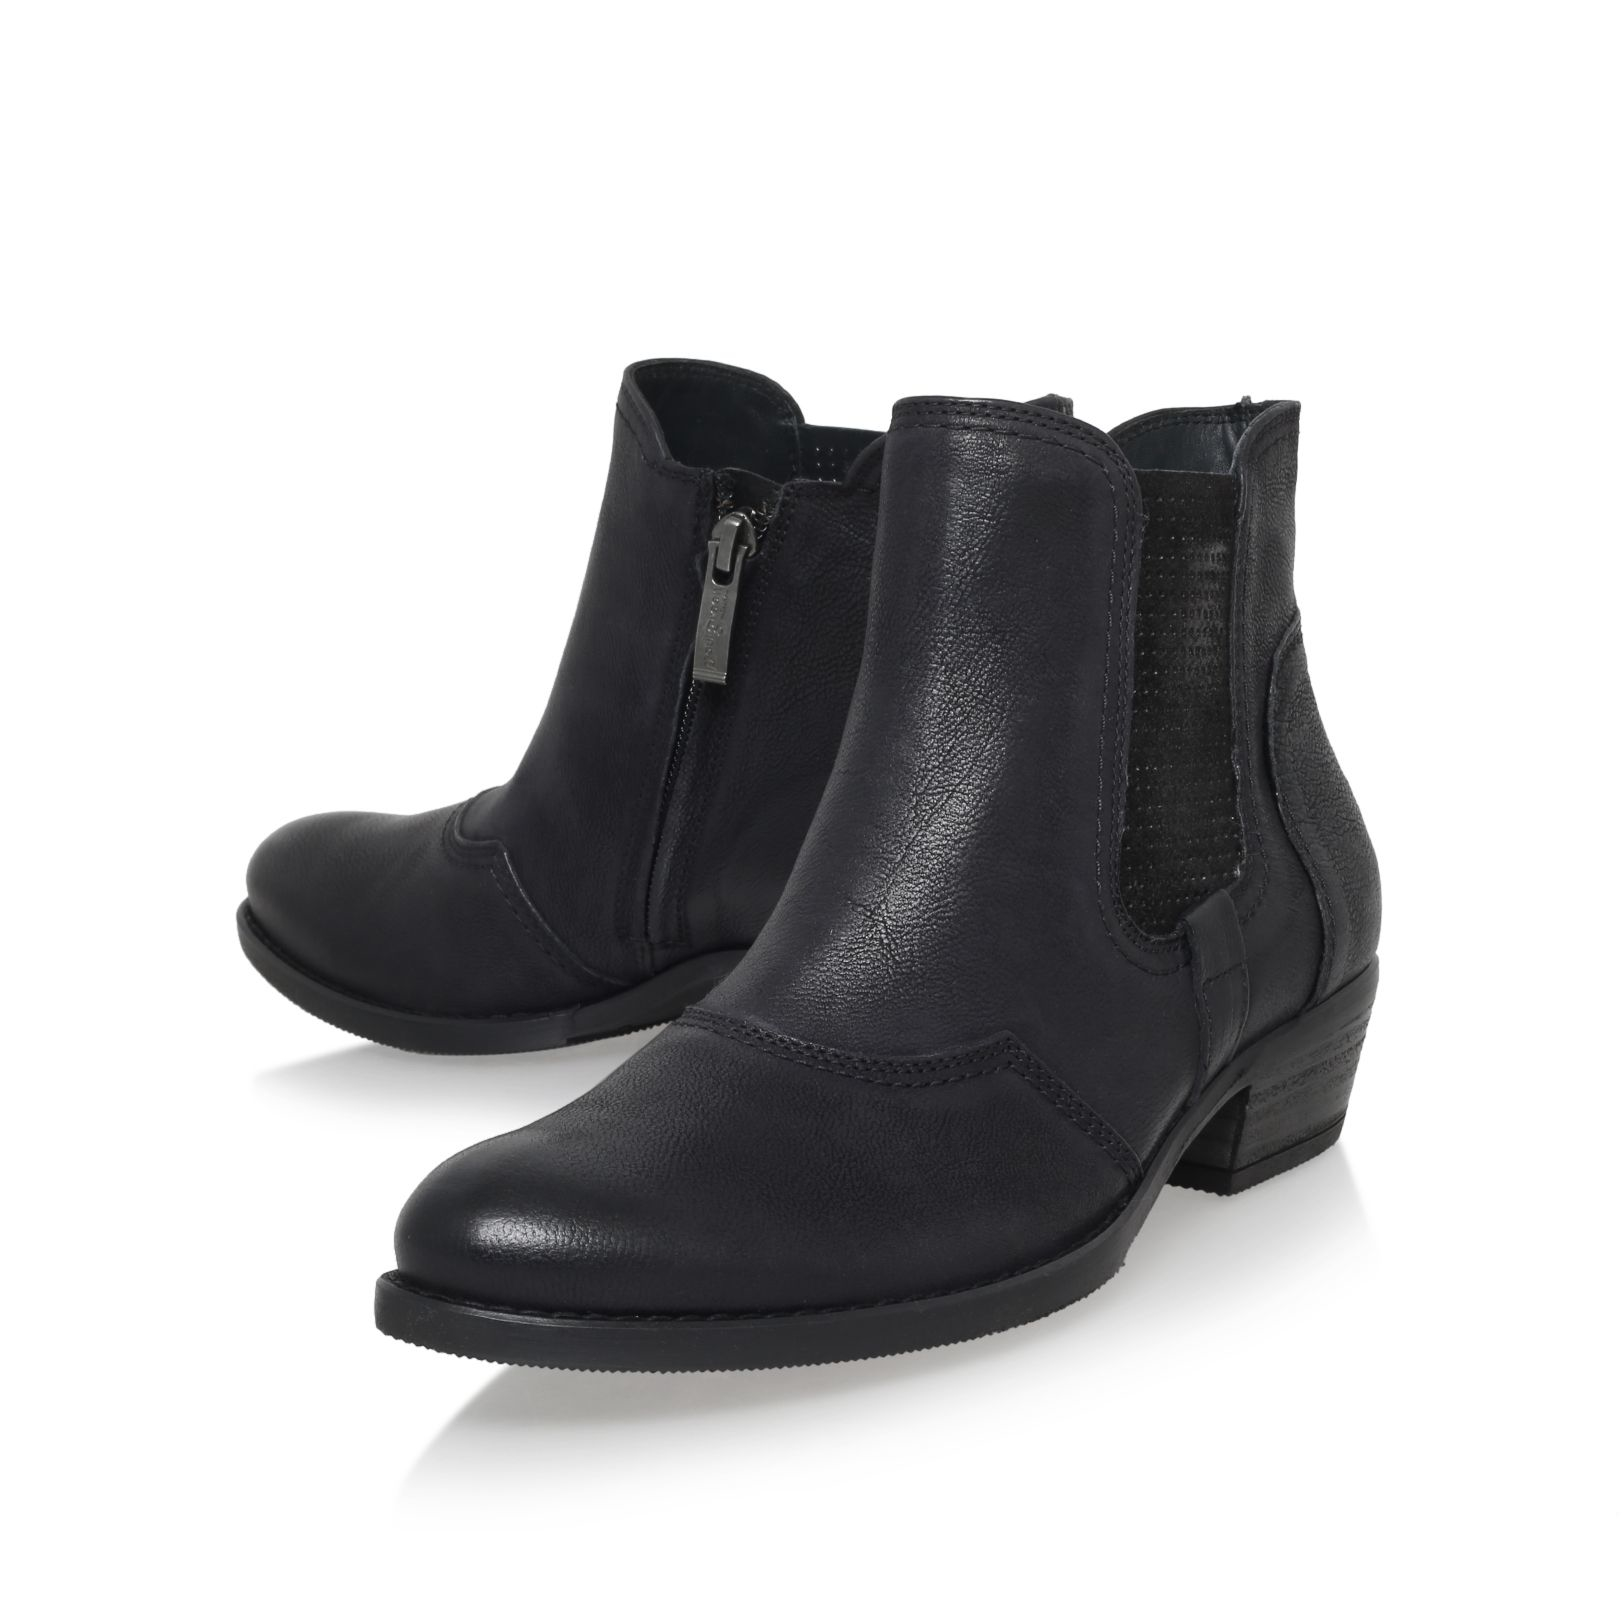 Paul green Michelle Low Heel Ankle Boots in Black | Lyst